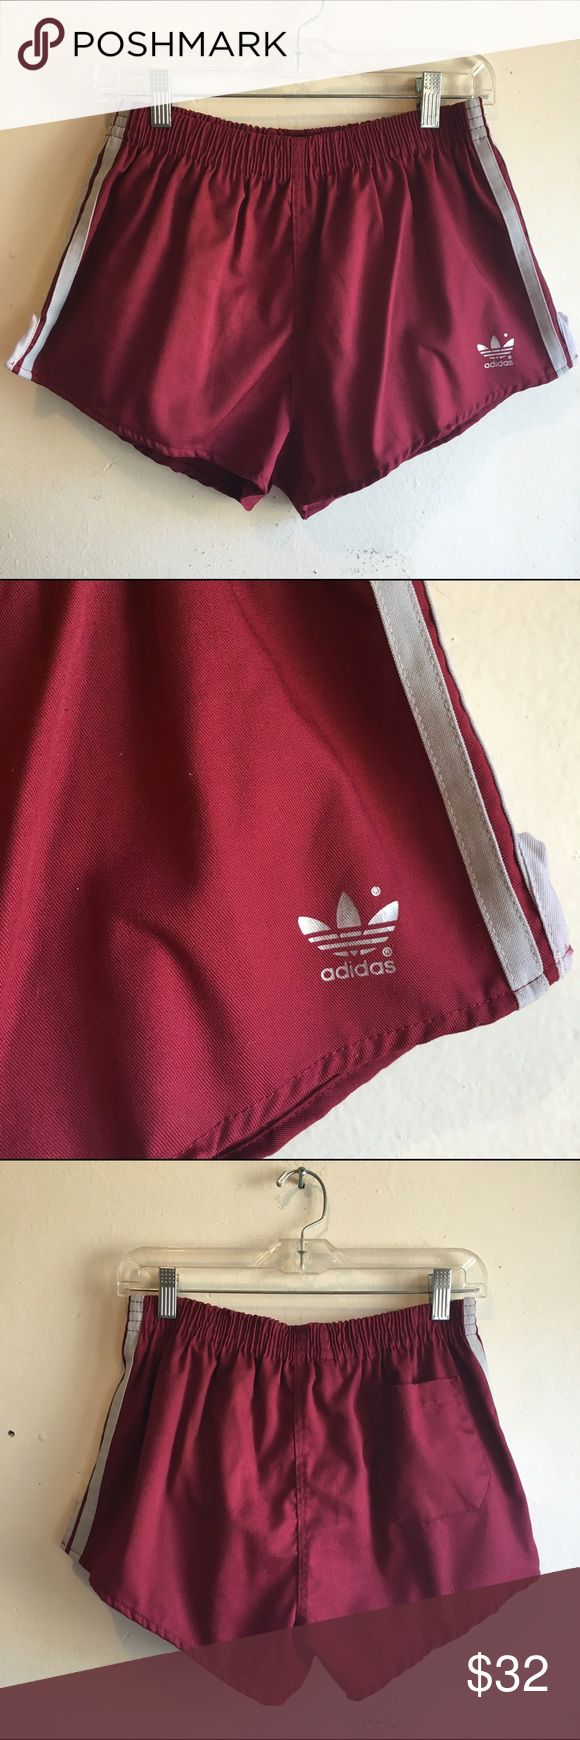 Adidas Soccer Shorts Soccer shorts by Adidas in perfect condition. Built in briefs. One back pocket. Unisex. #K072 Adidas Shorts